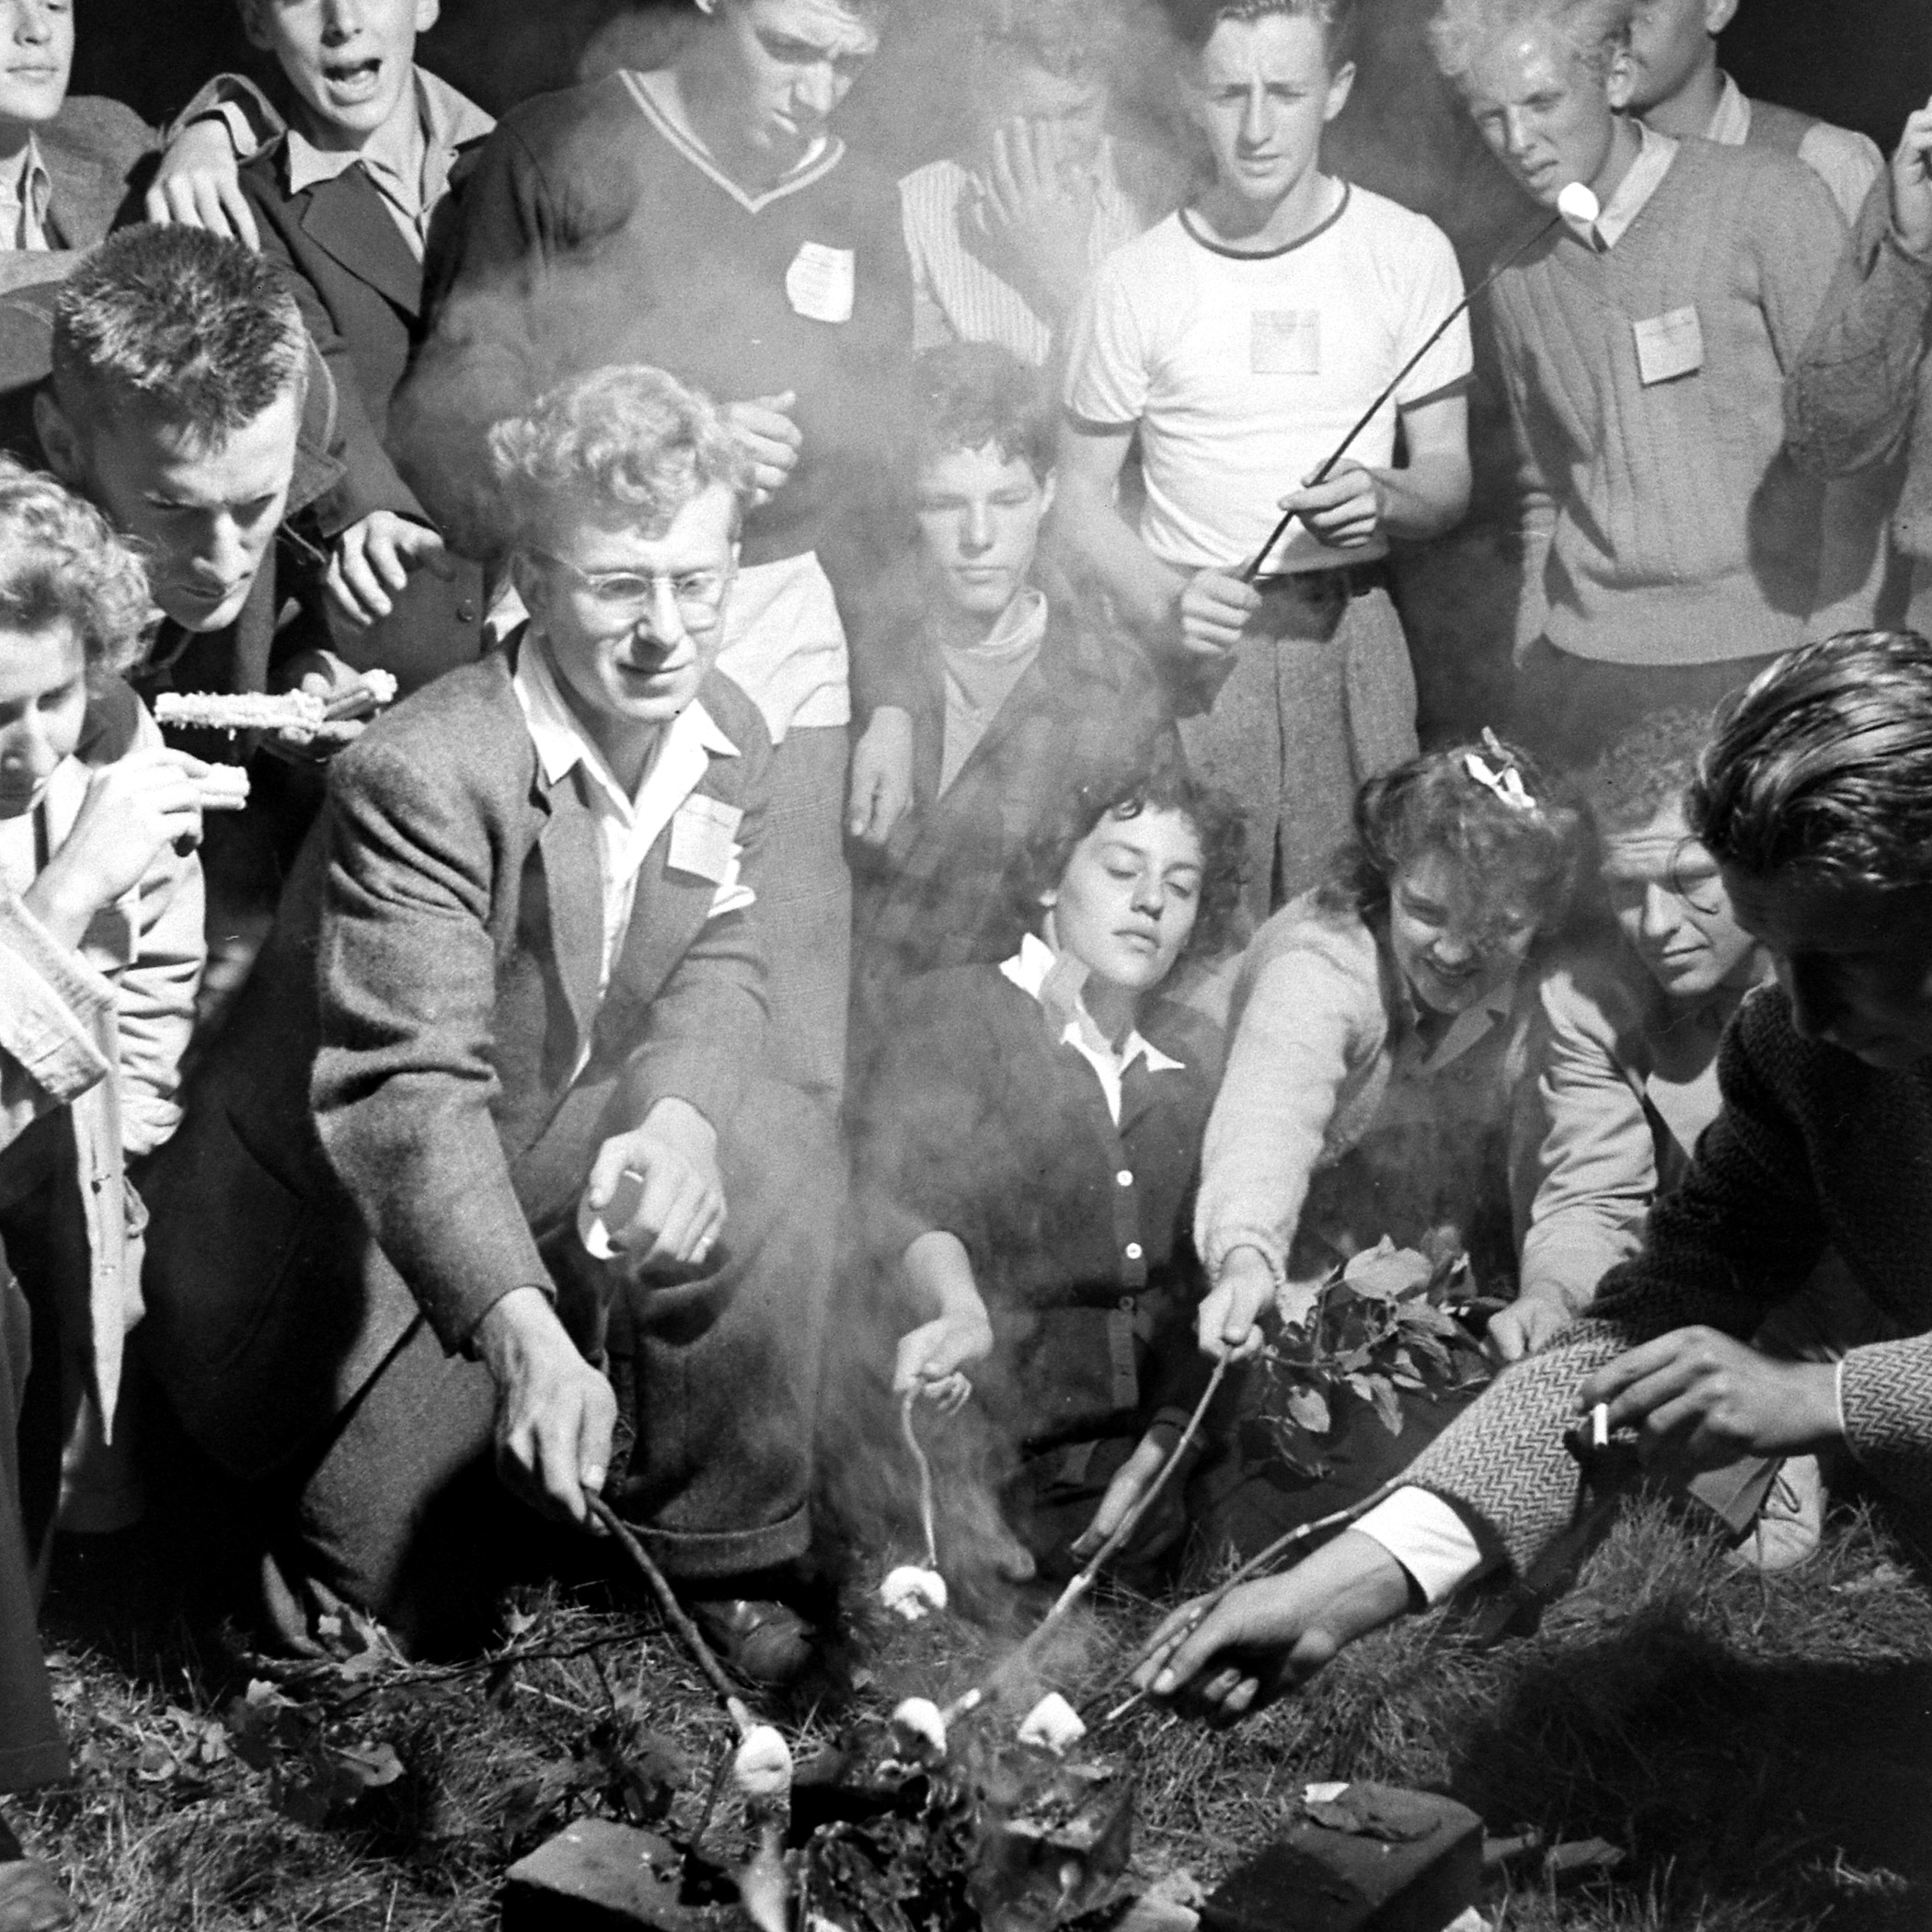 Volunteers with the Land Corps in Vermont roasting marshmallows.